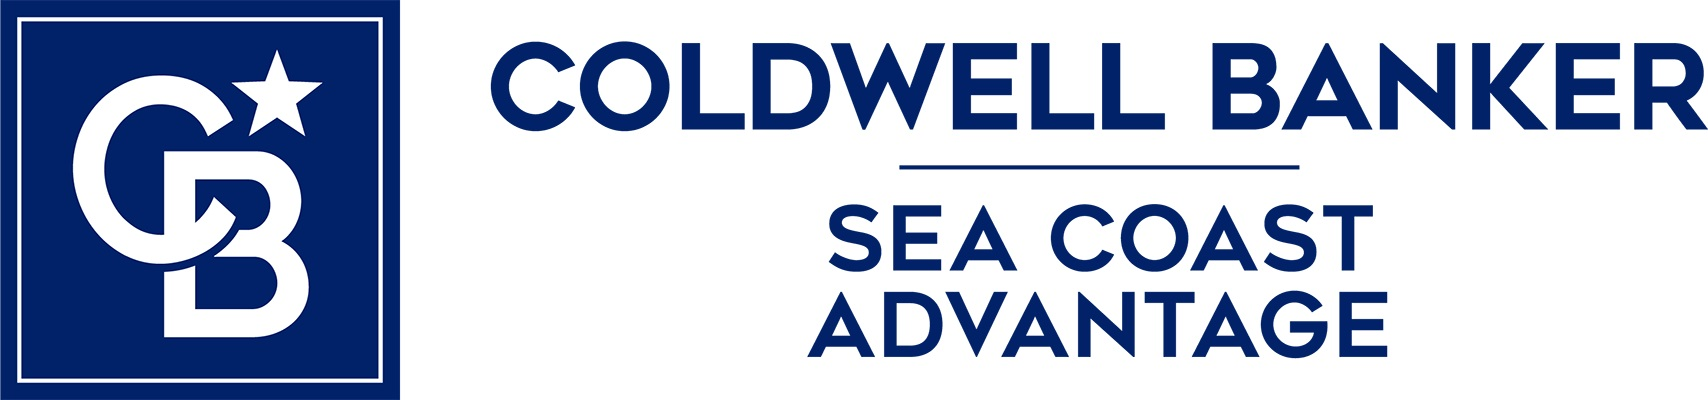 Michelle Schaack - Coldwell Banker Sea Coast Advantage Realty